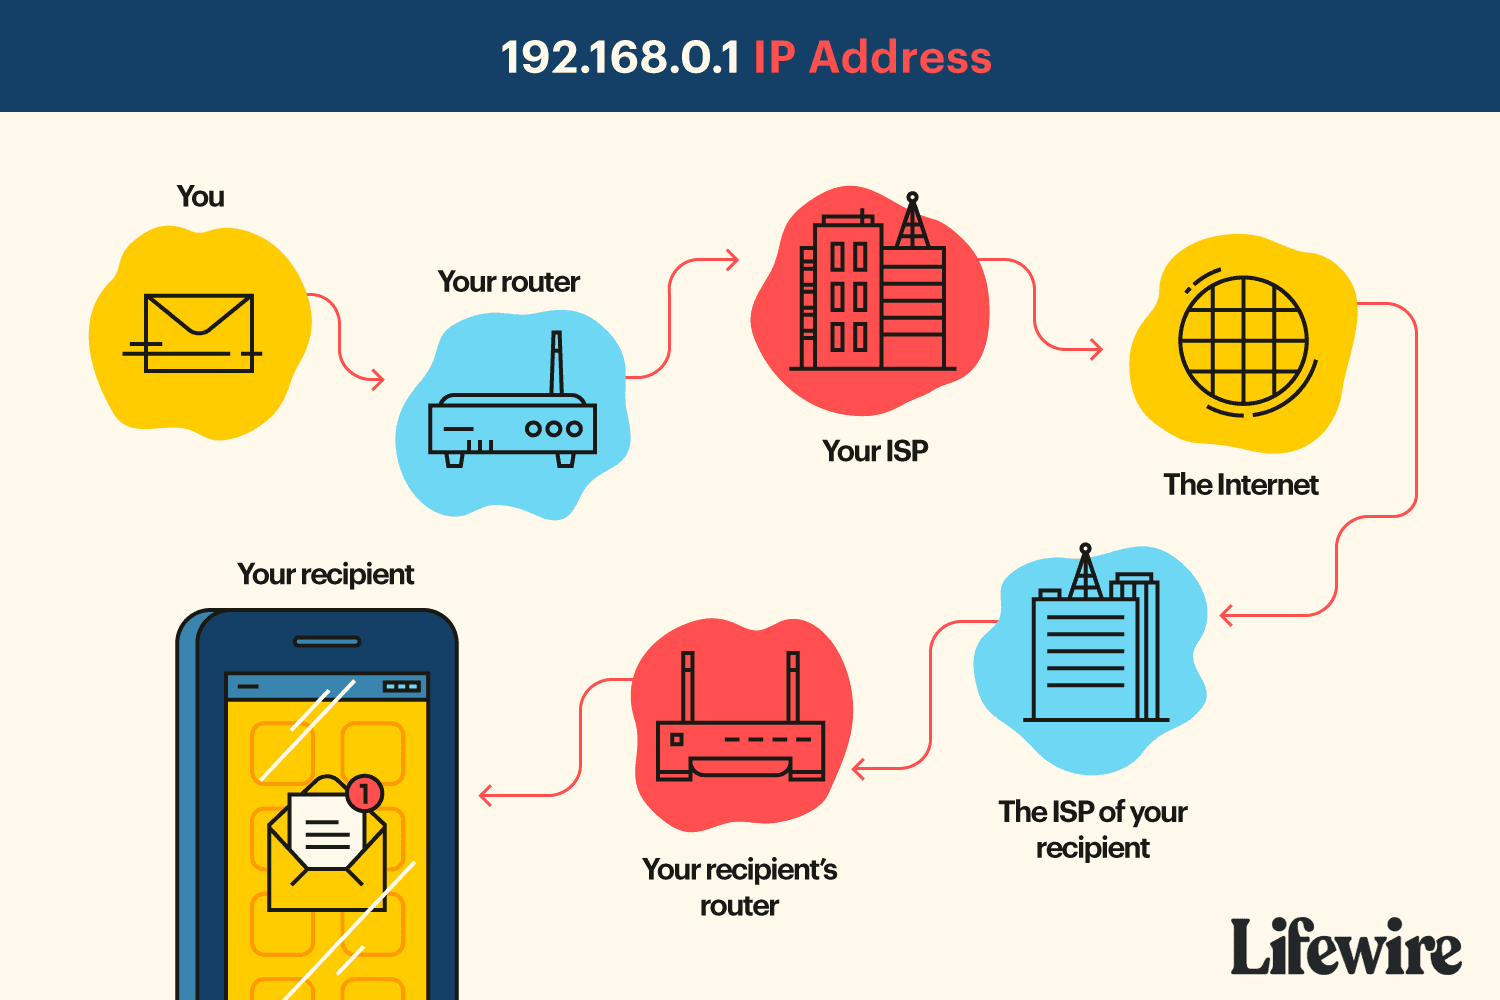 An illustration of the route a message might take through a router with the IP address 192.168.0.1.